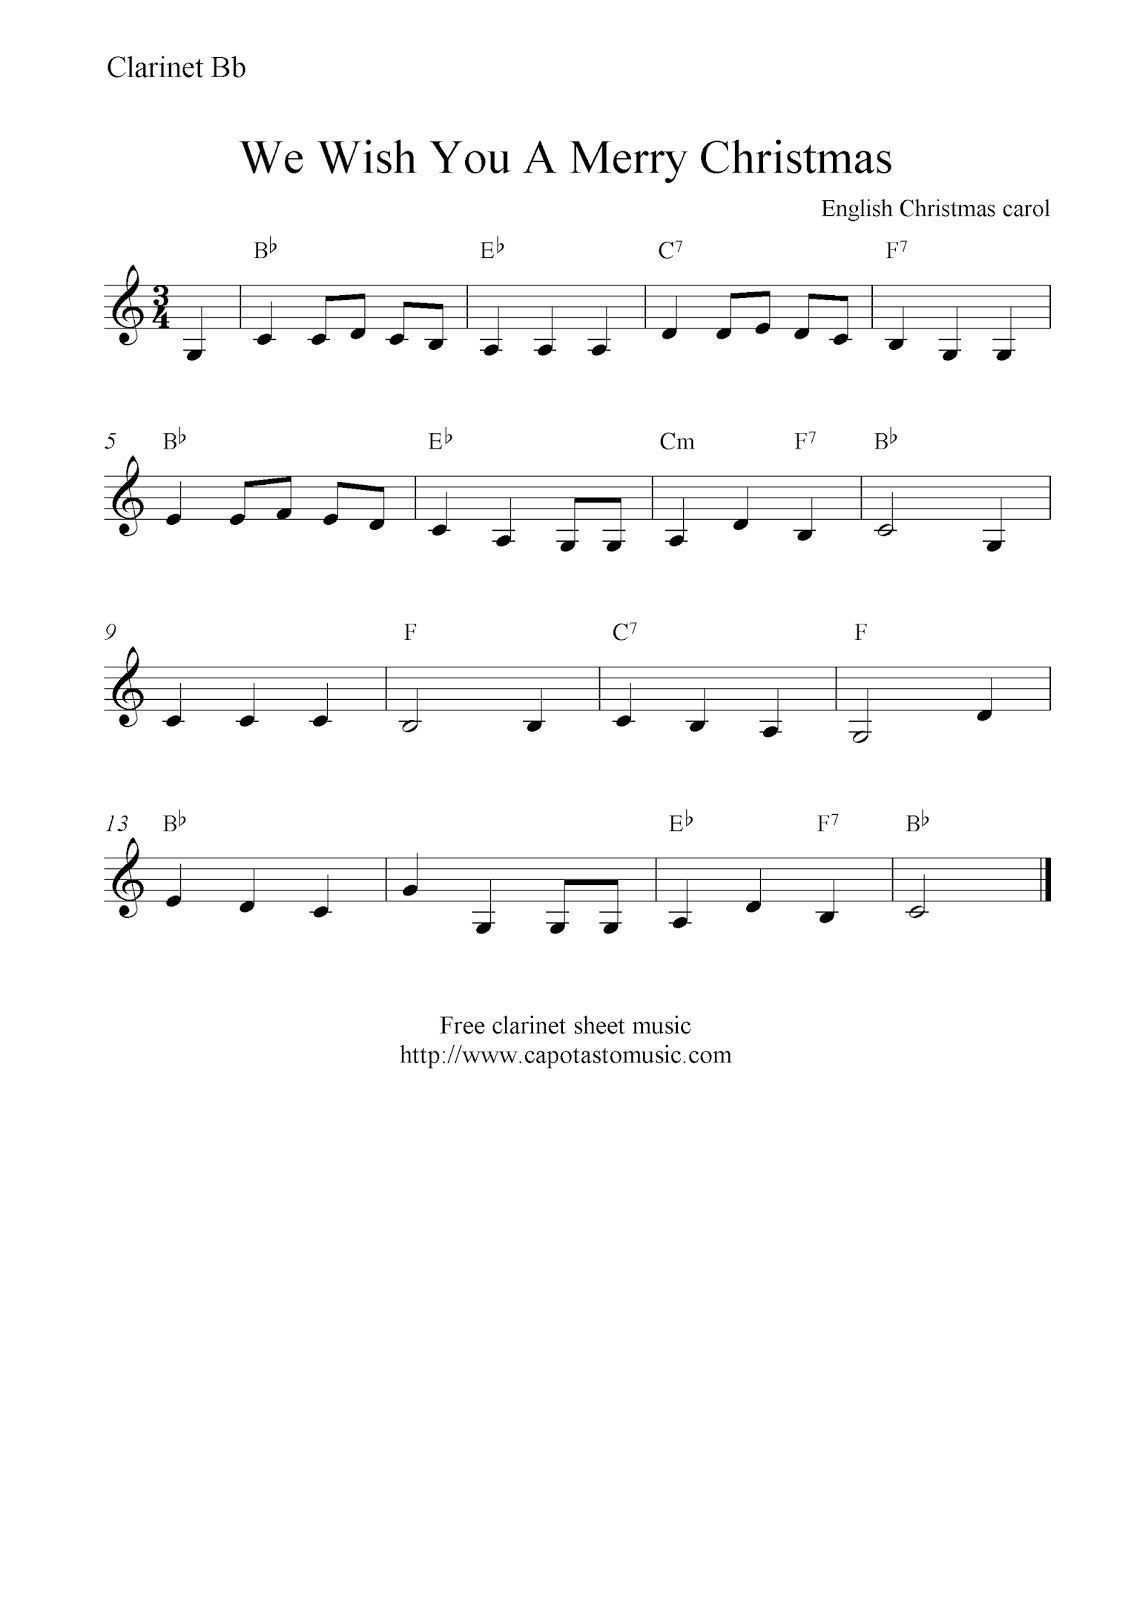 Satisfactory image intended for free printable clarinet sheet music